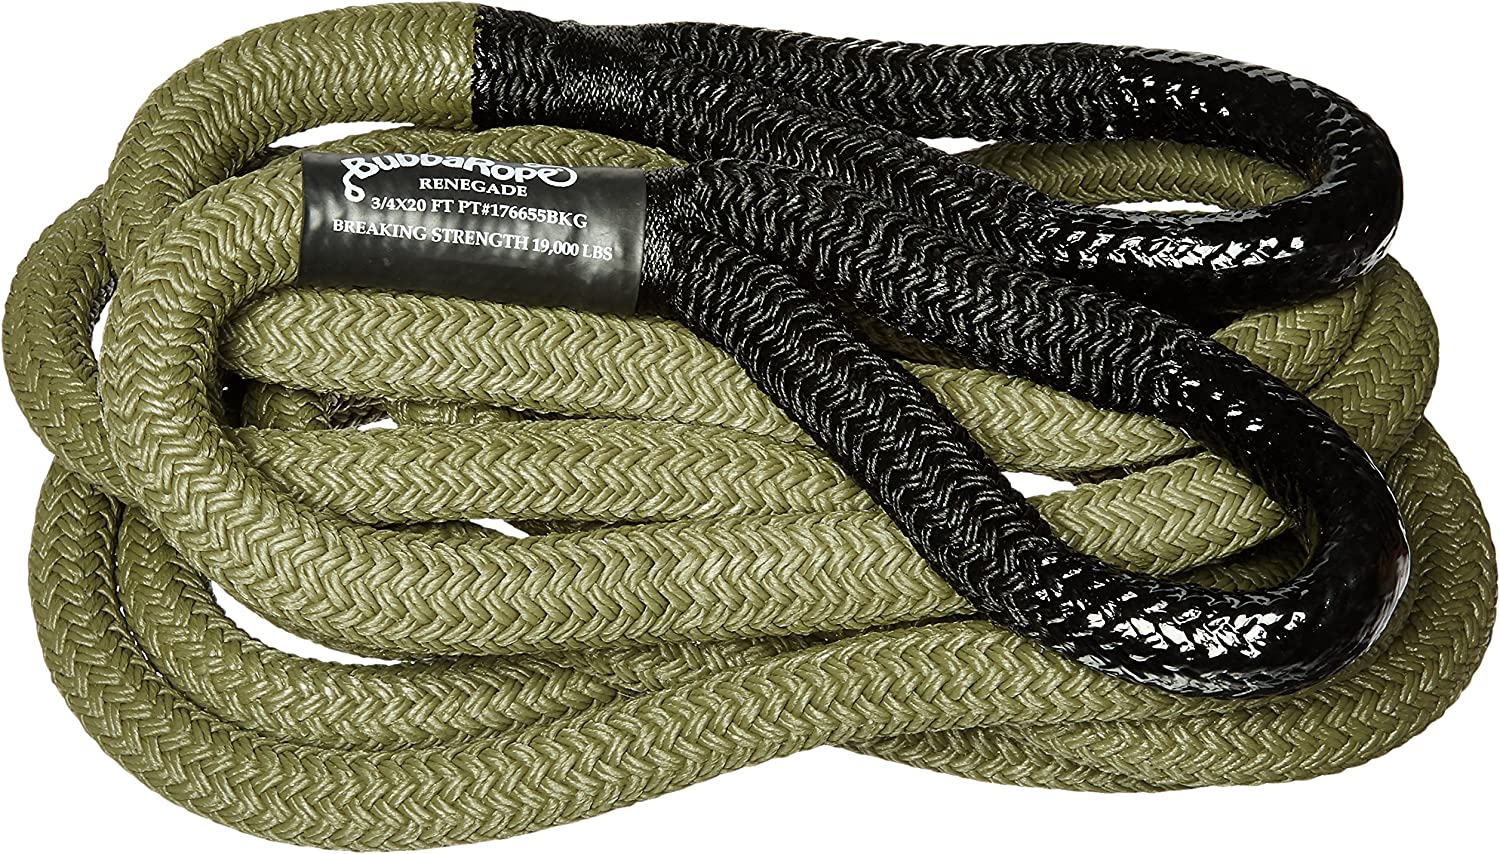 Bubba Sale Special Price Gifts Rope Renegade 19000LBS